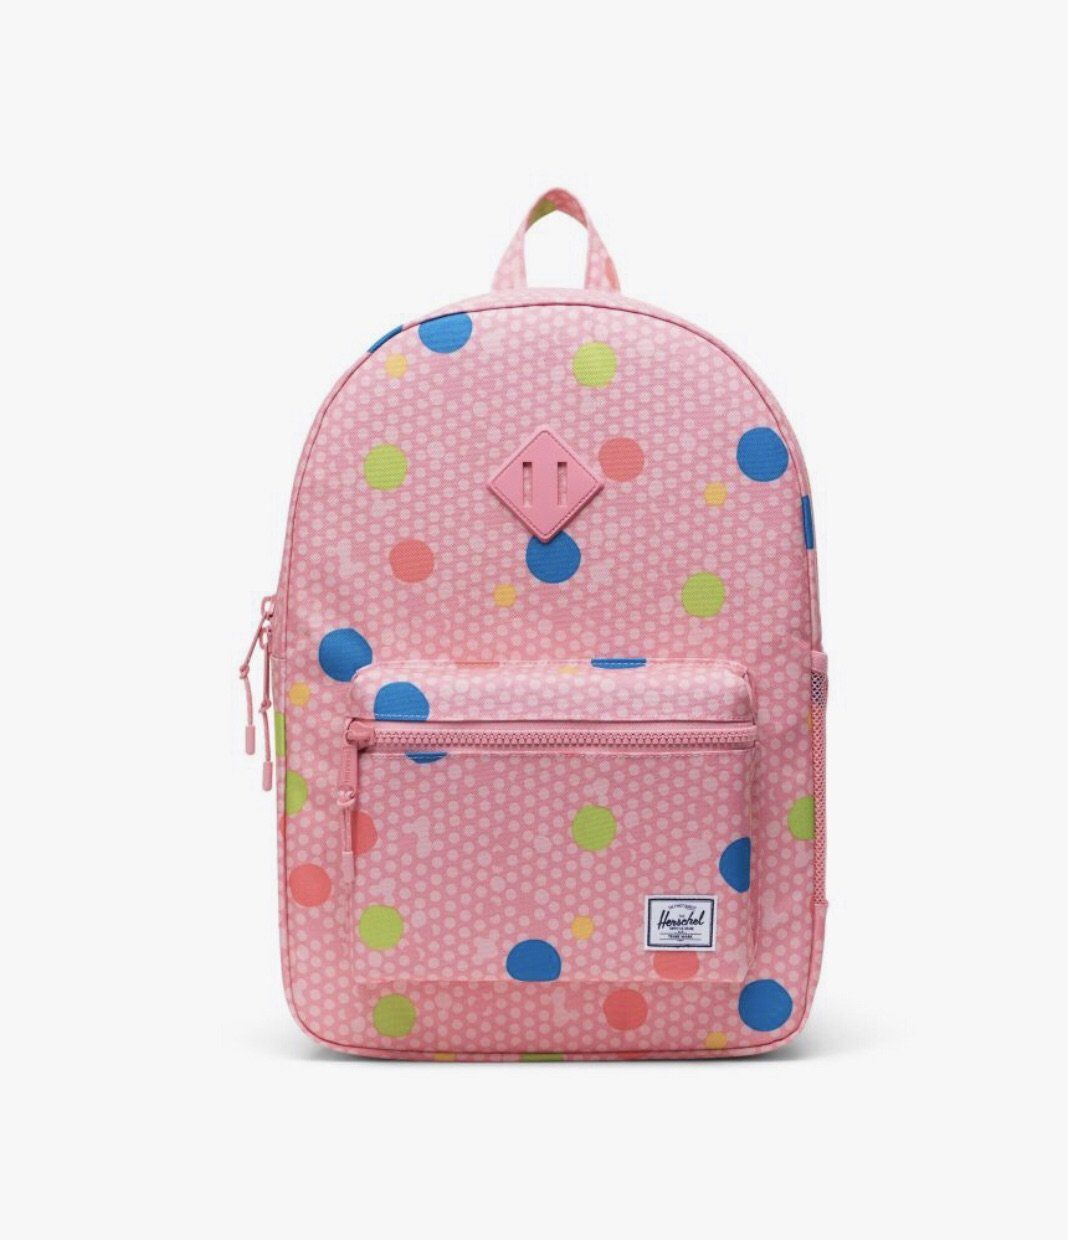 10560-03267-OS-Herschel Heritage Youth XL 20 L Backpack - Primary Polka Backpack Herschel